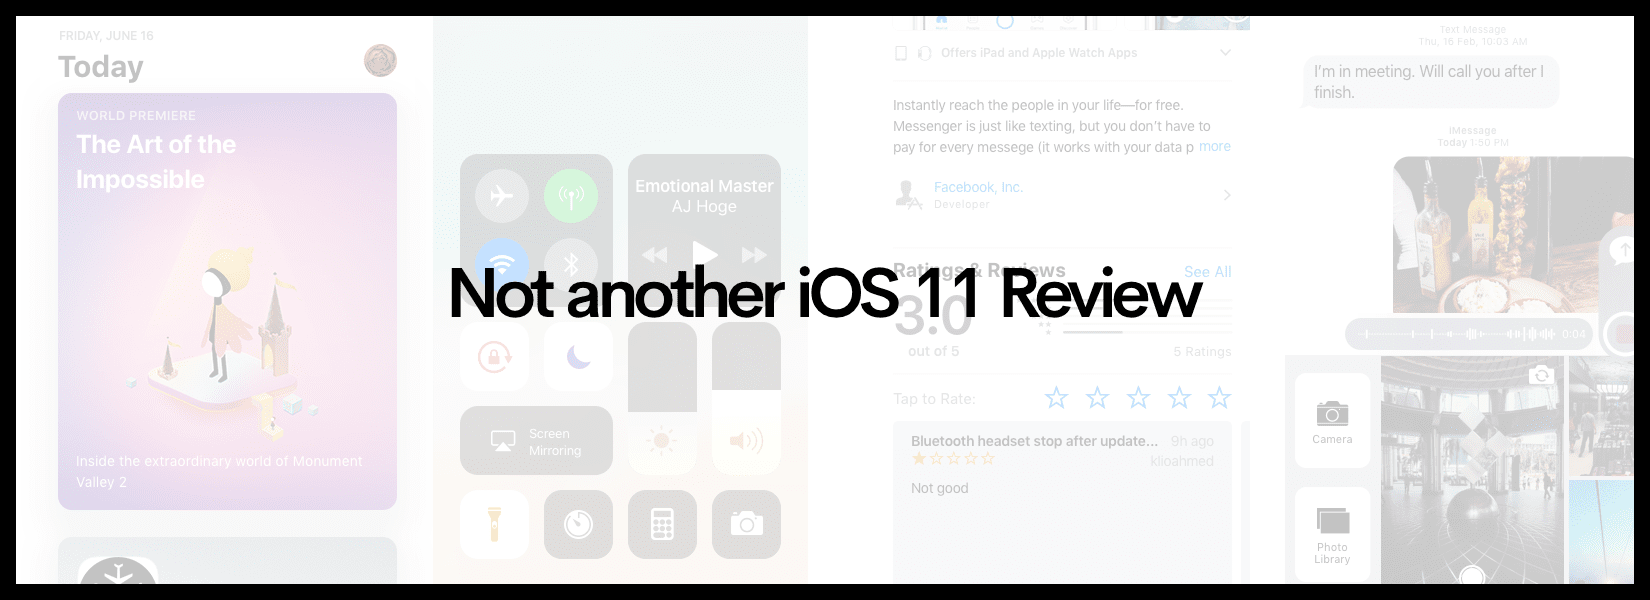 Not another iOS 11 Review